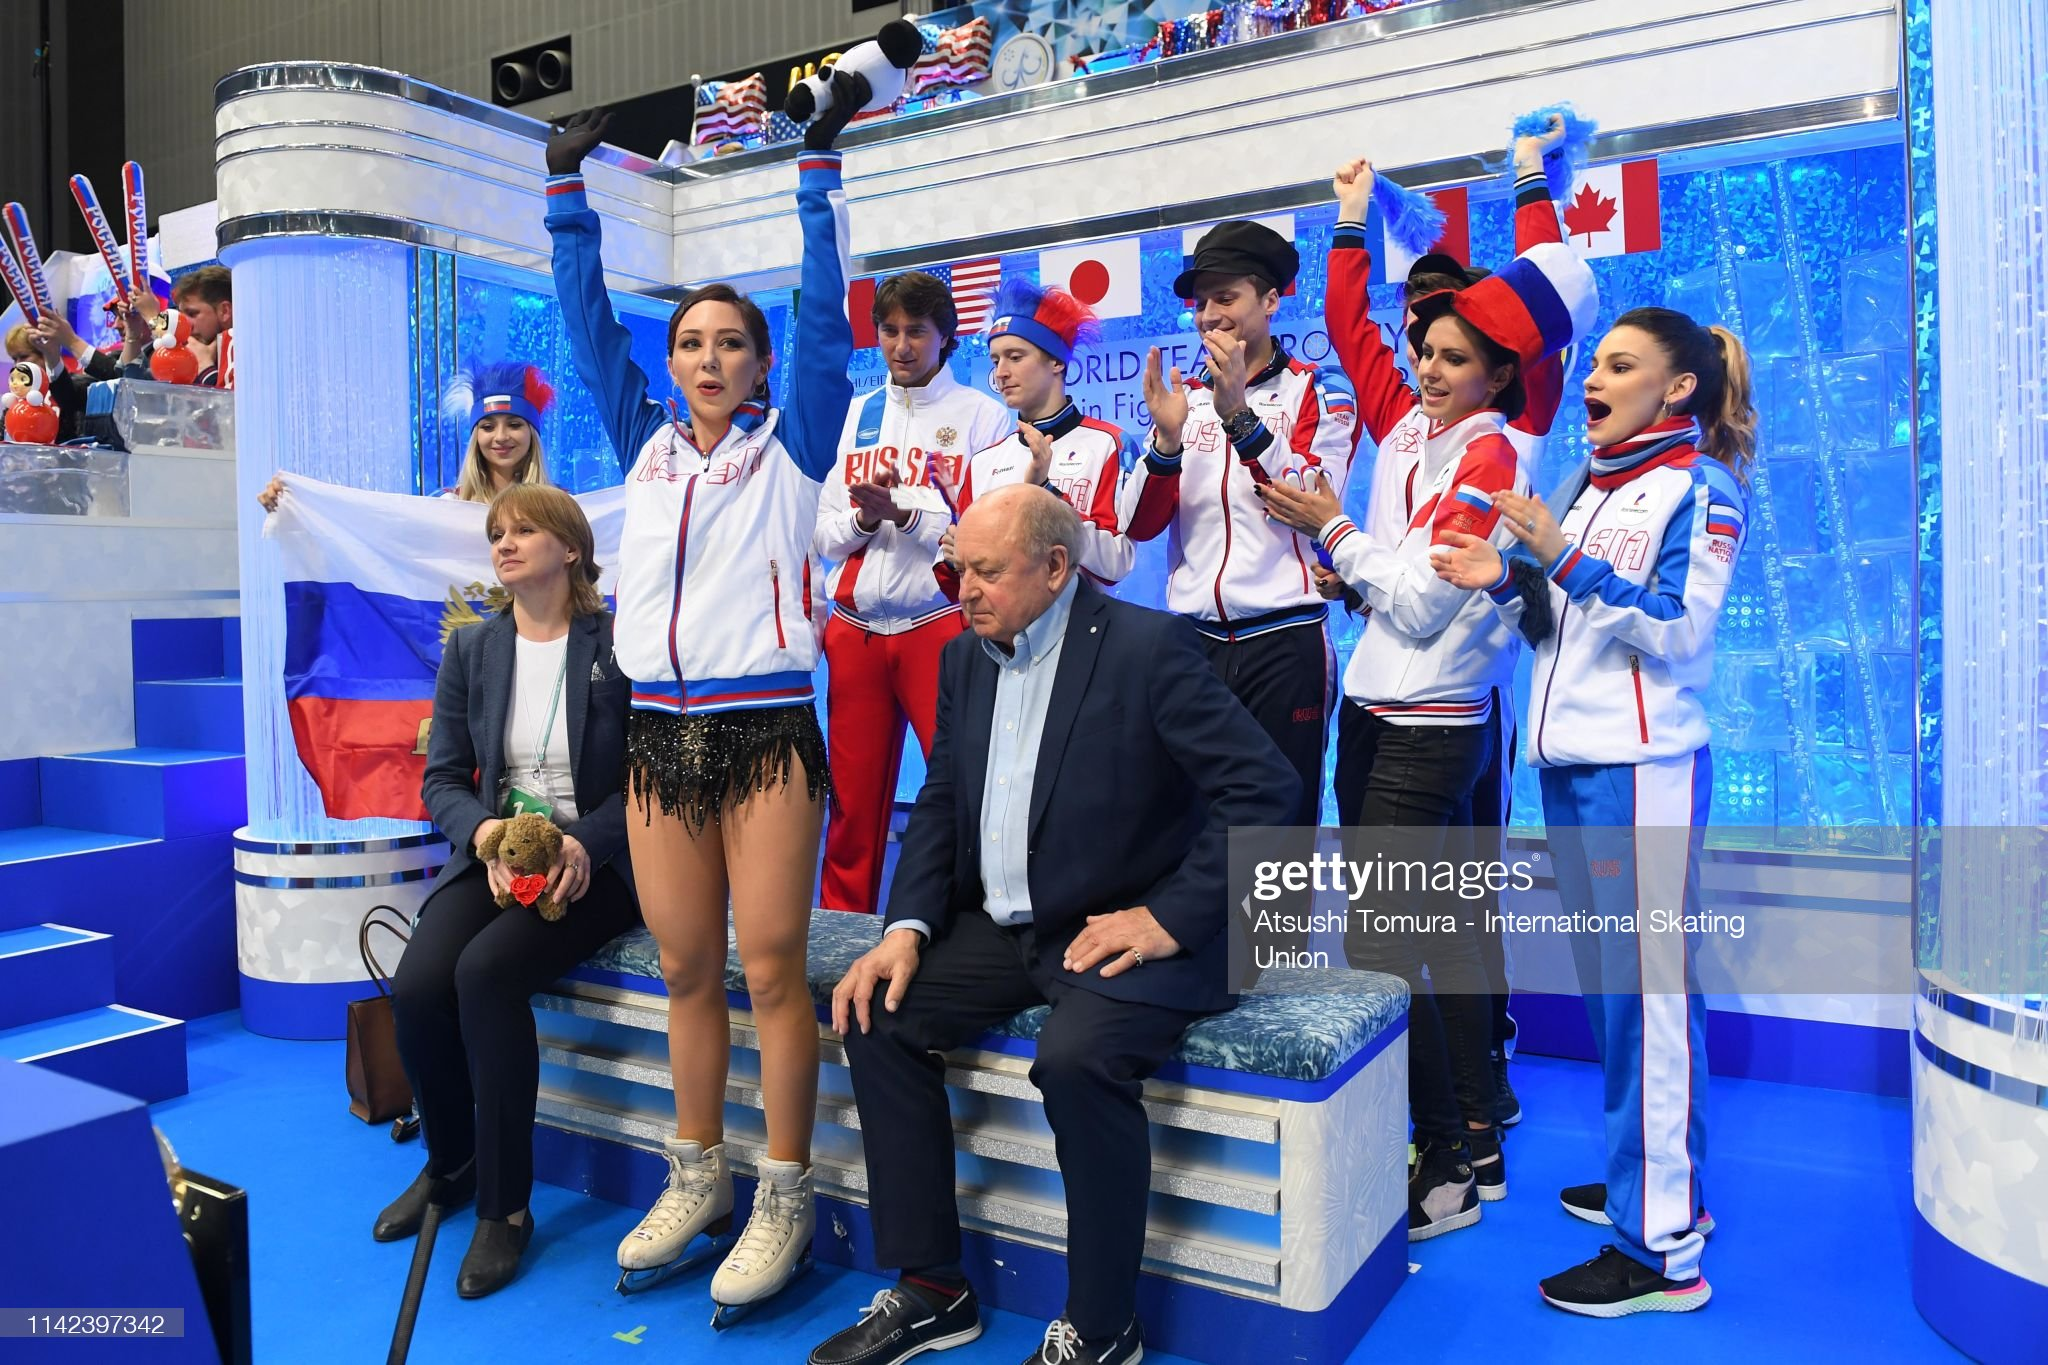 https://media.gettyimages.com/photos/elizavetatuktamysheva-of-russia-celebrates-her-score-with-her-team-picture-id1142397342?s=2048x2048